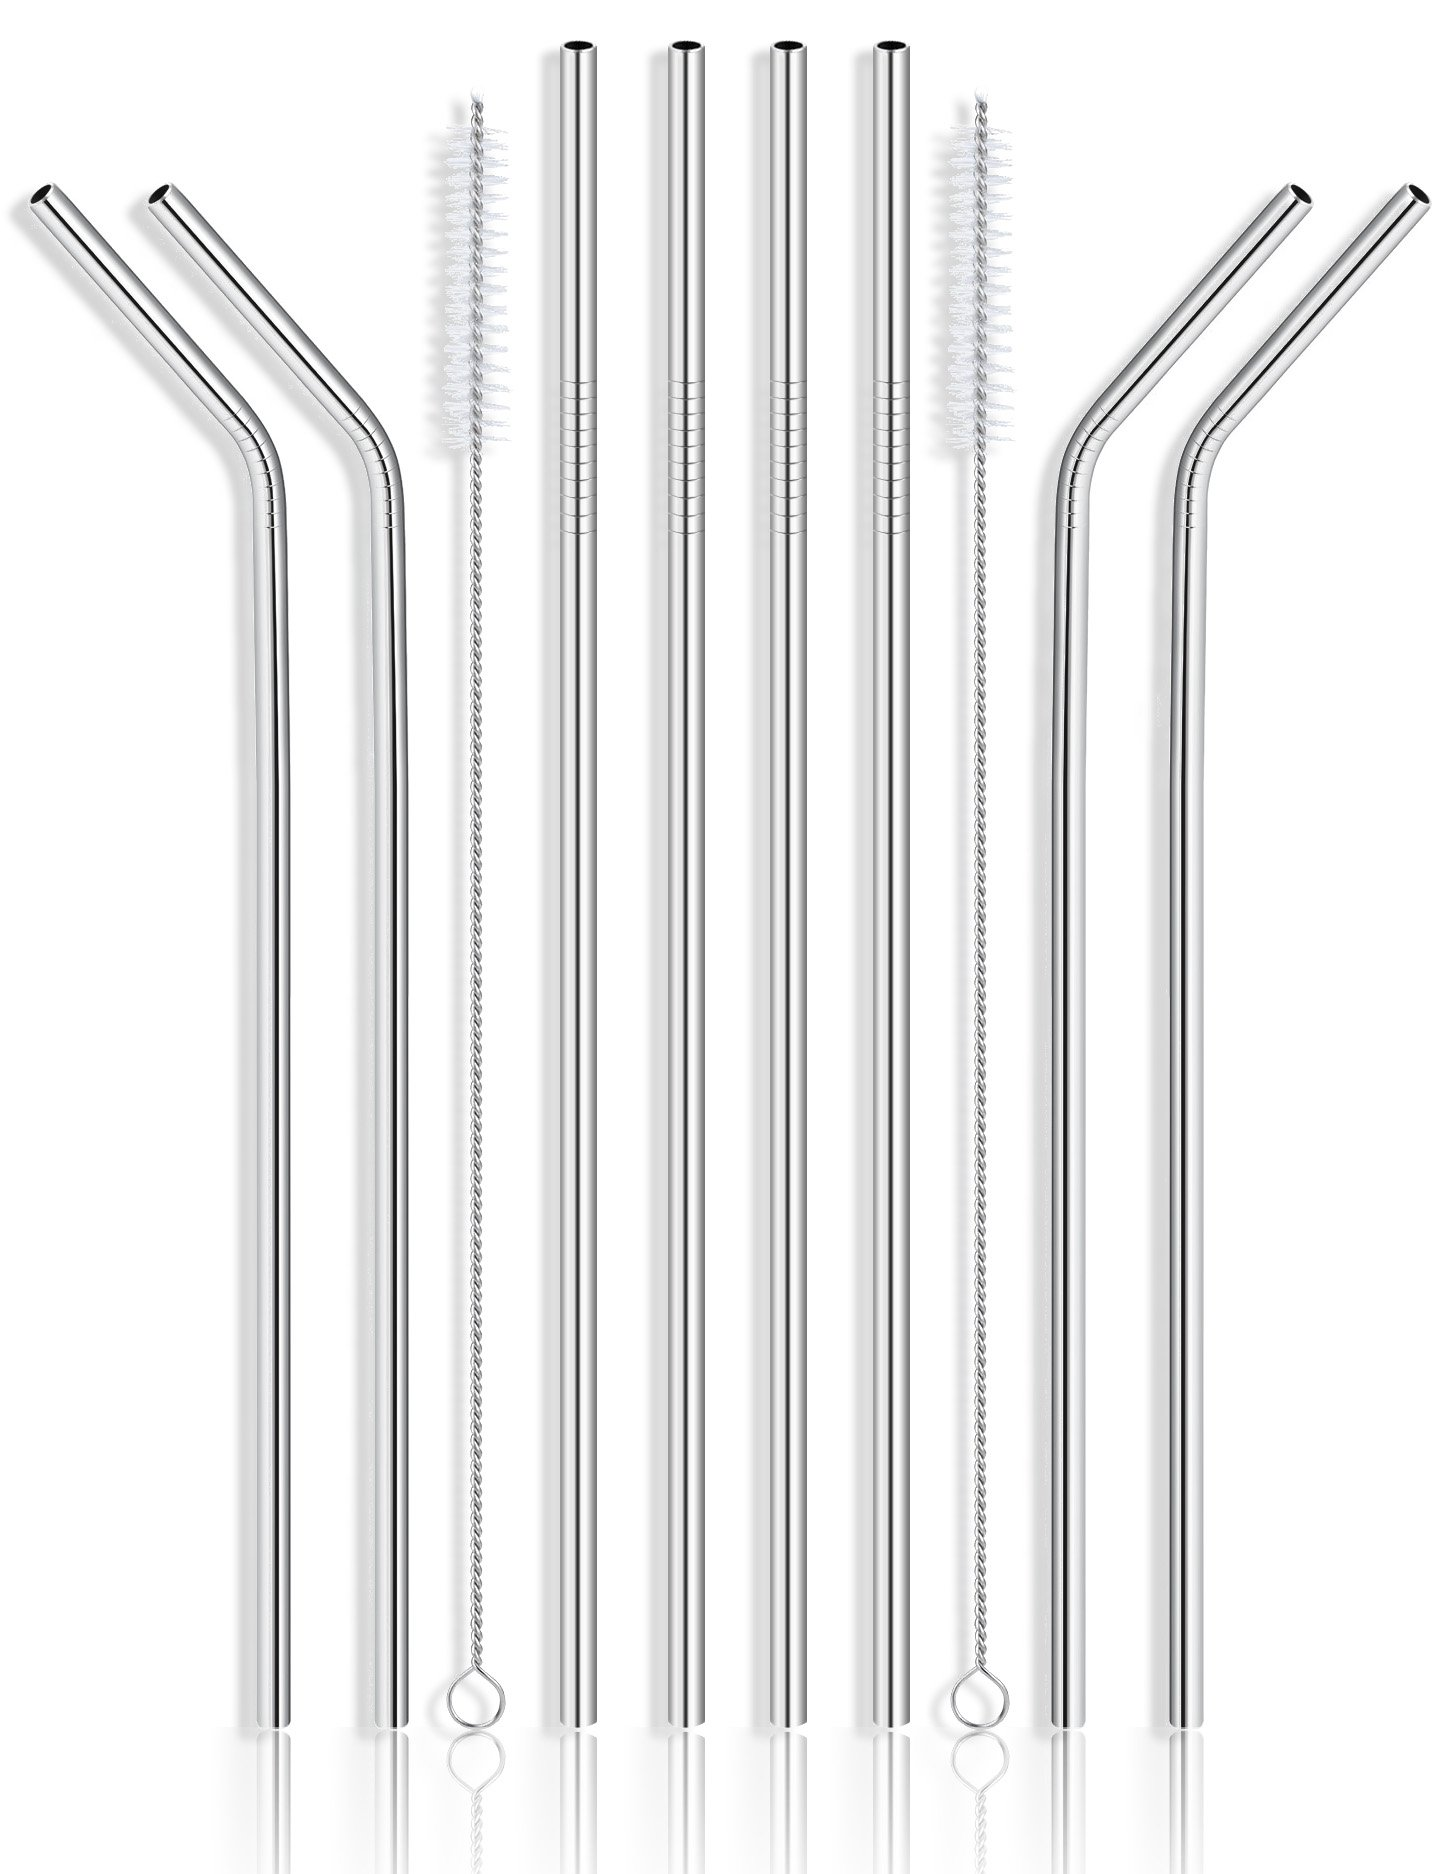 4faf58d77fc Get Quotations · Reusable Stainless Steel Drinking Straws - Set of 8 Extra  Long 10.5